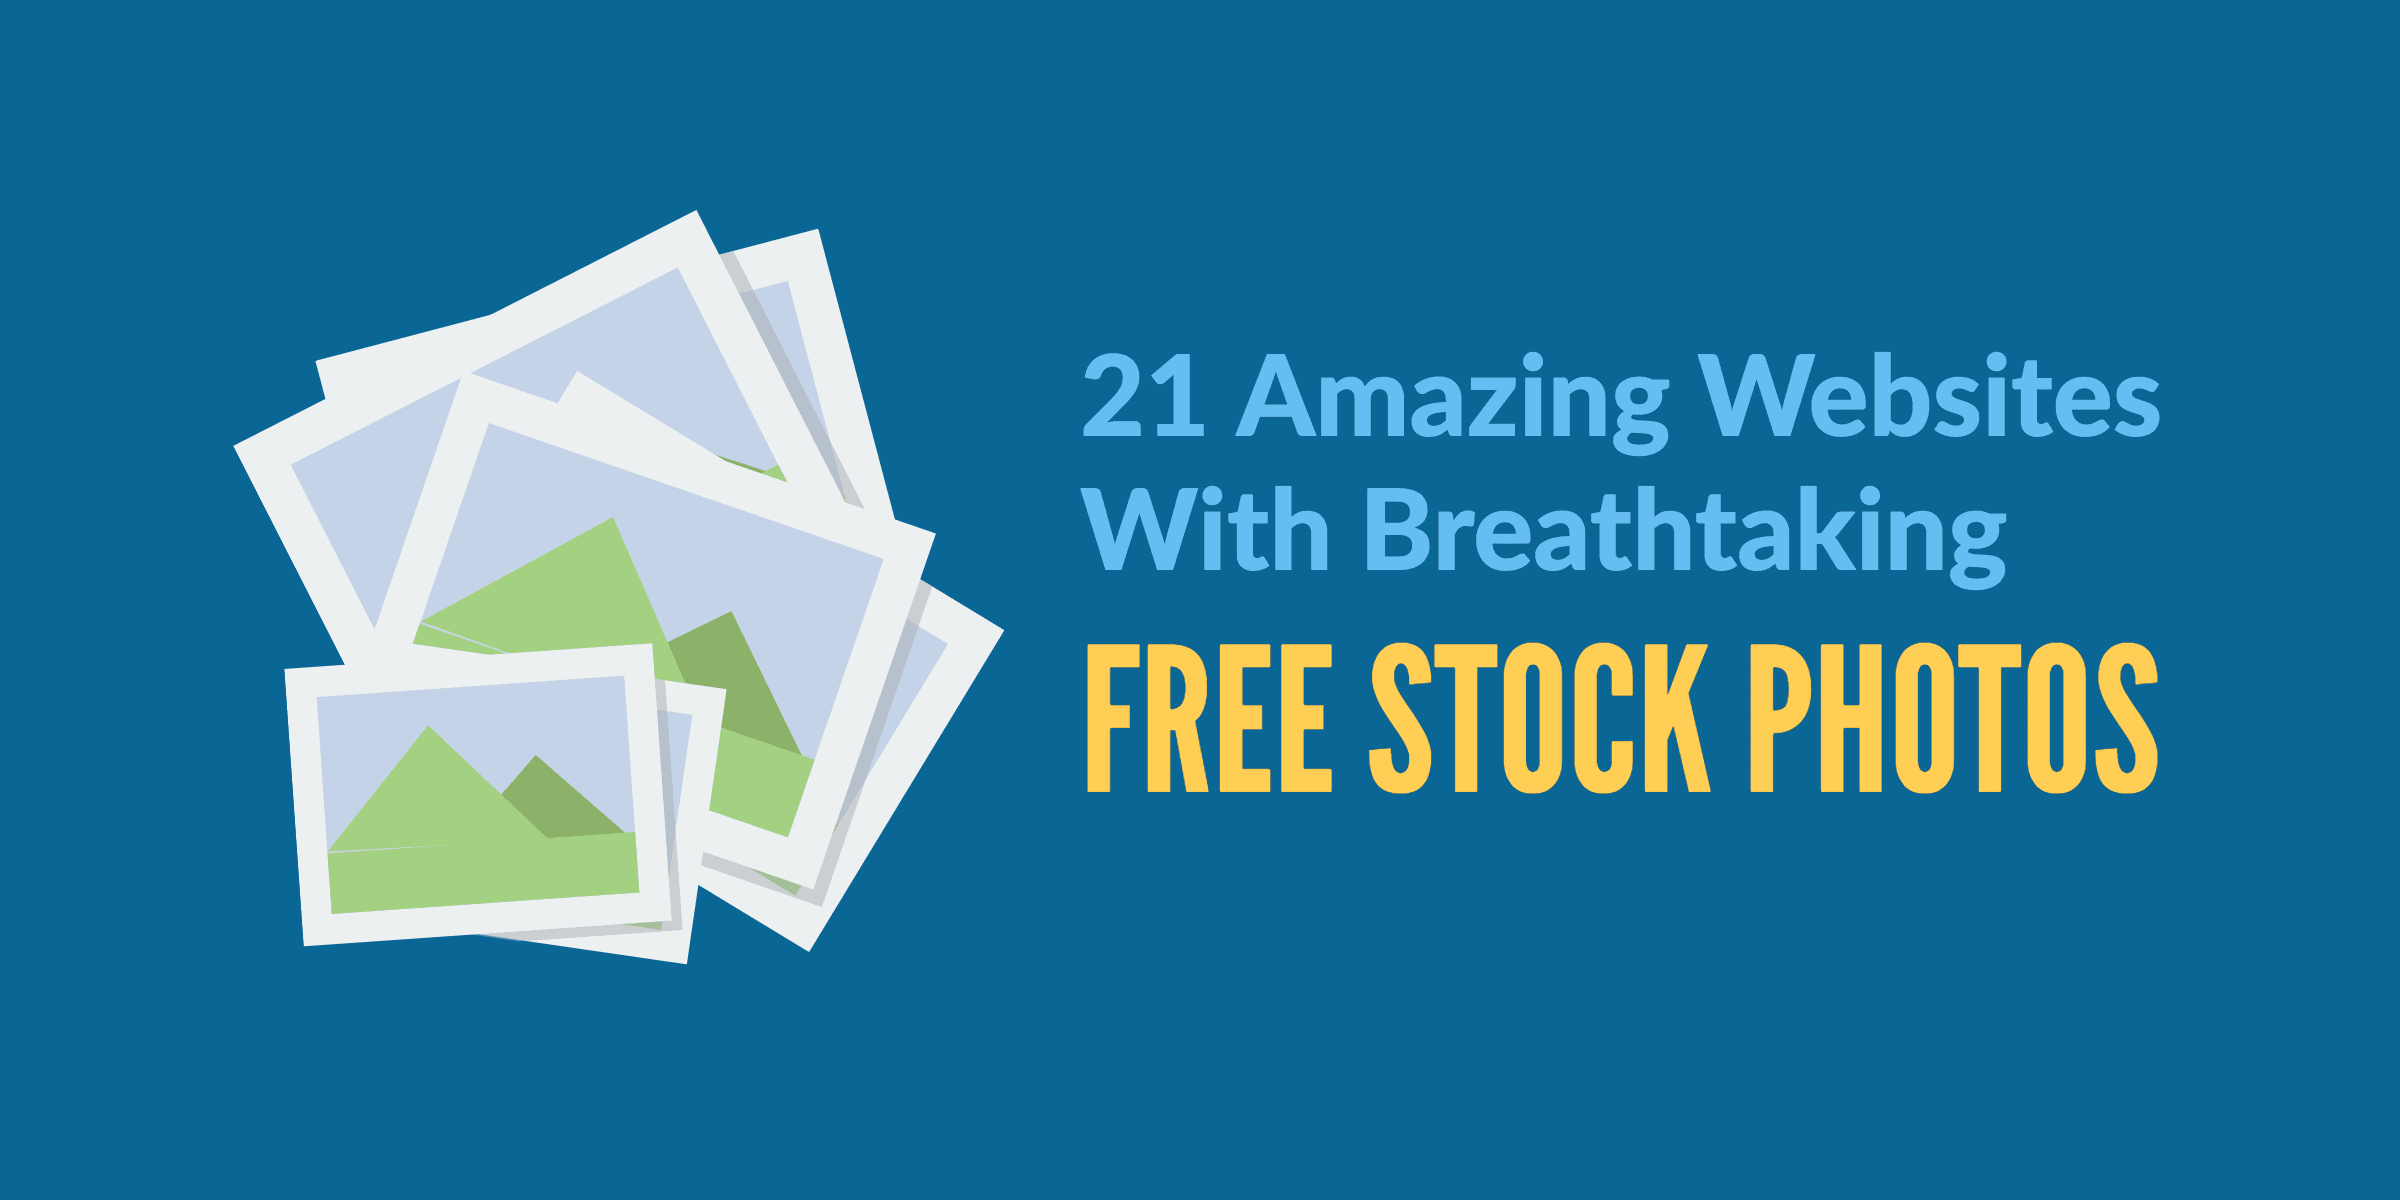 Free stock photos featured image